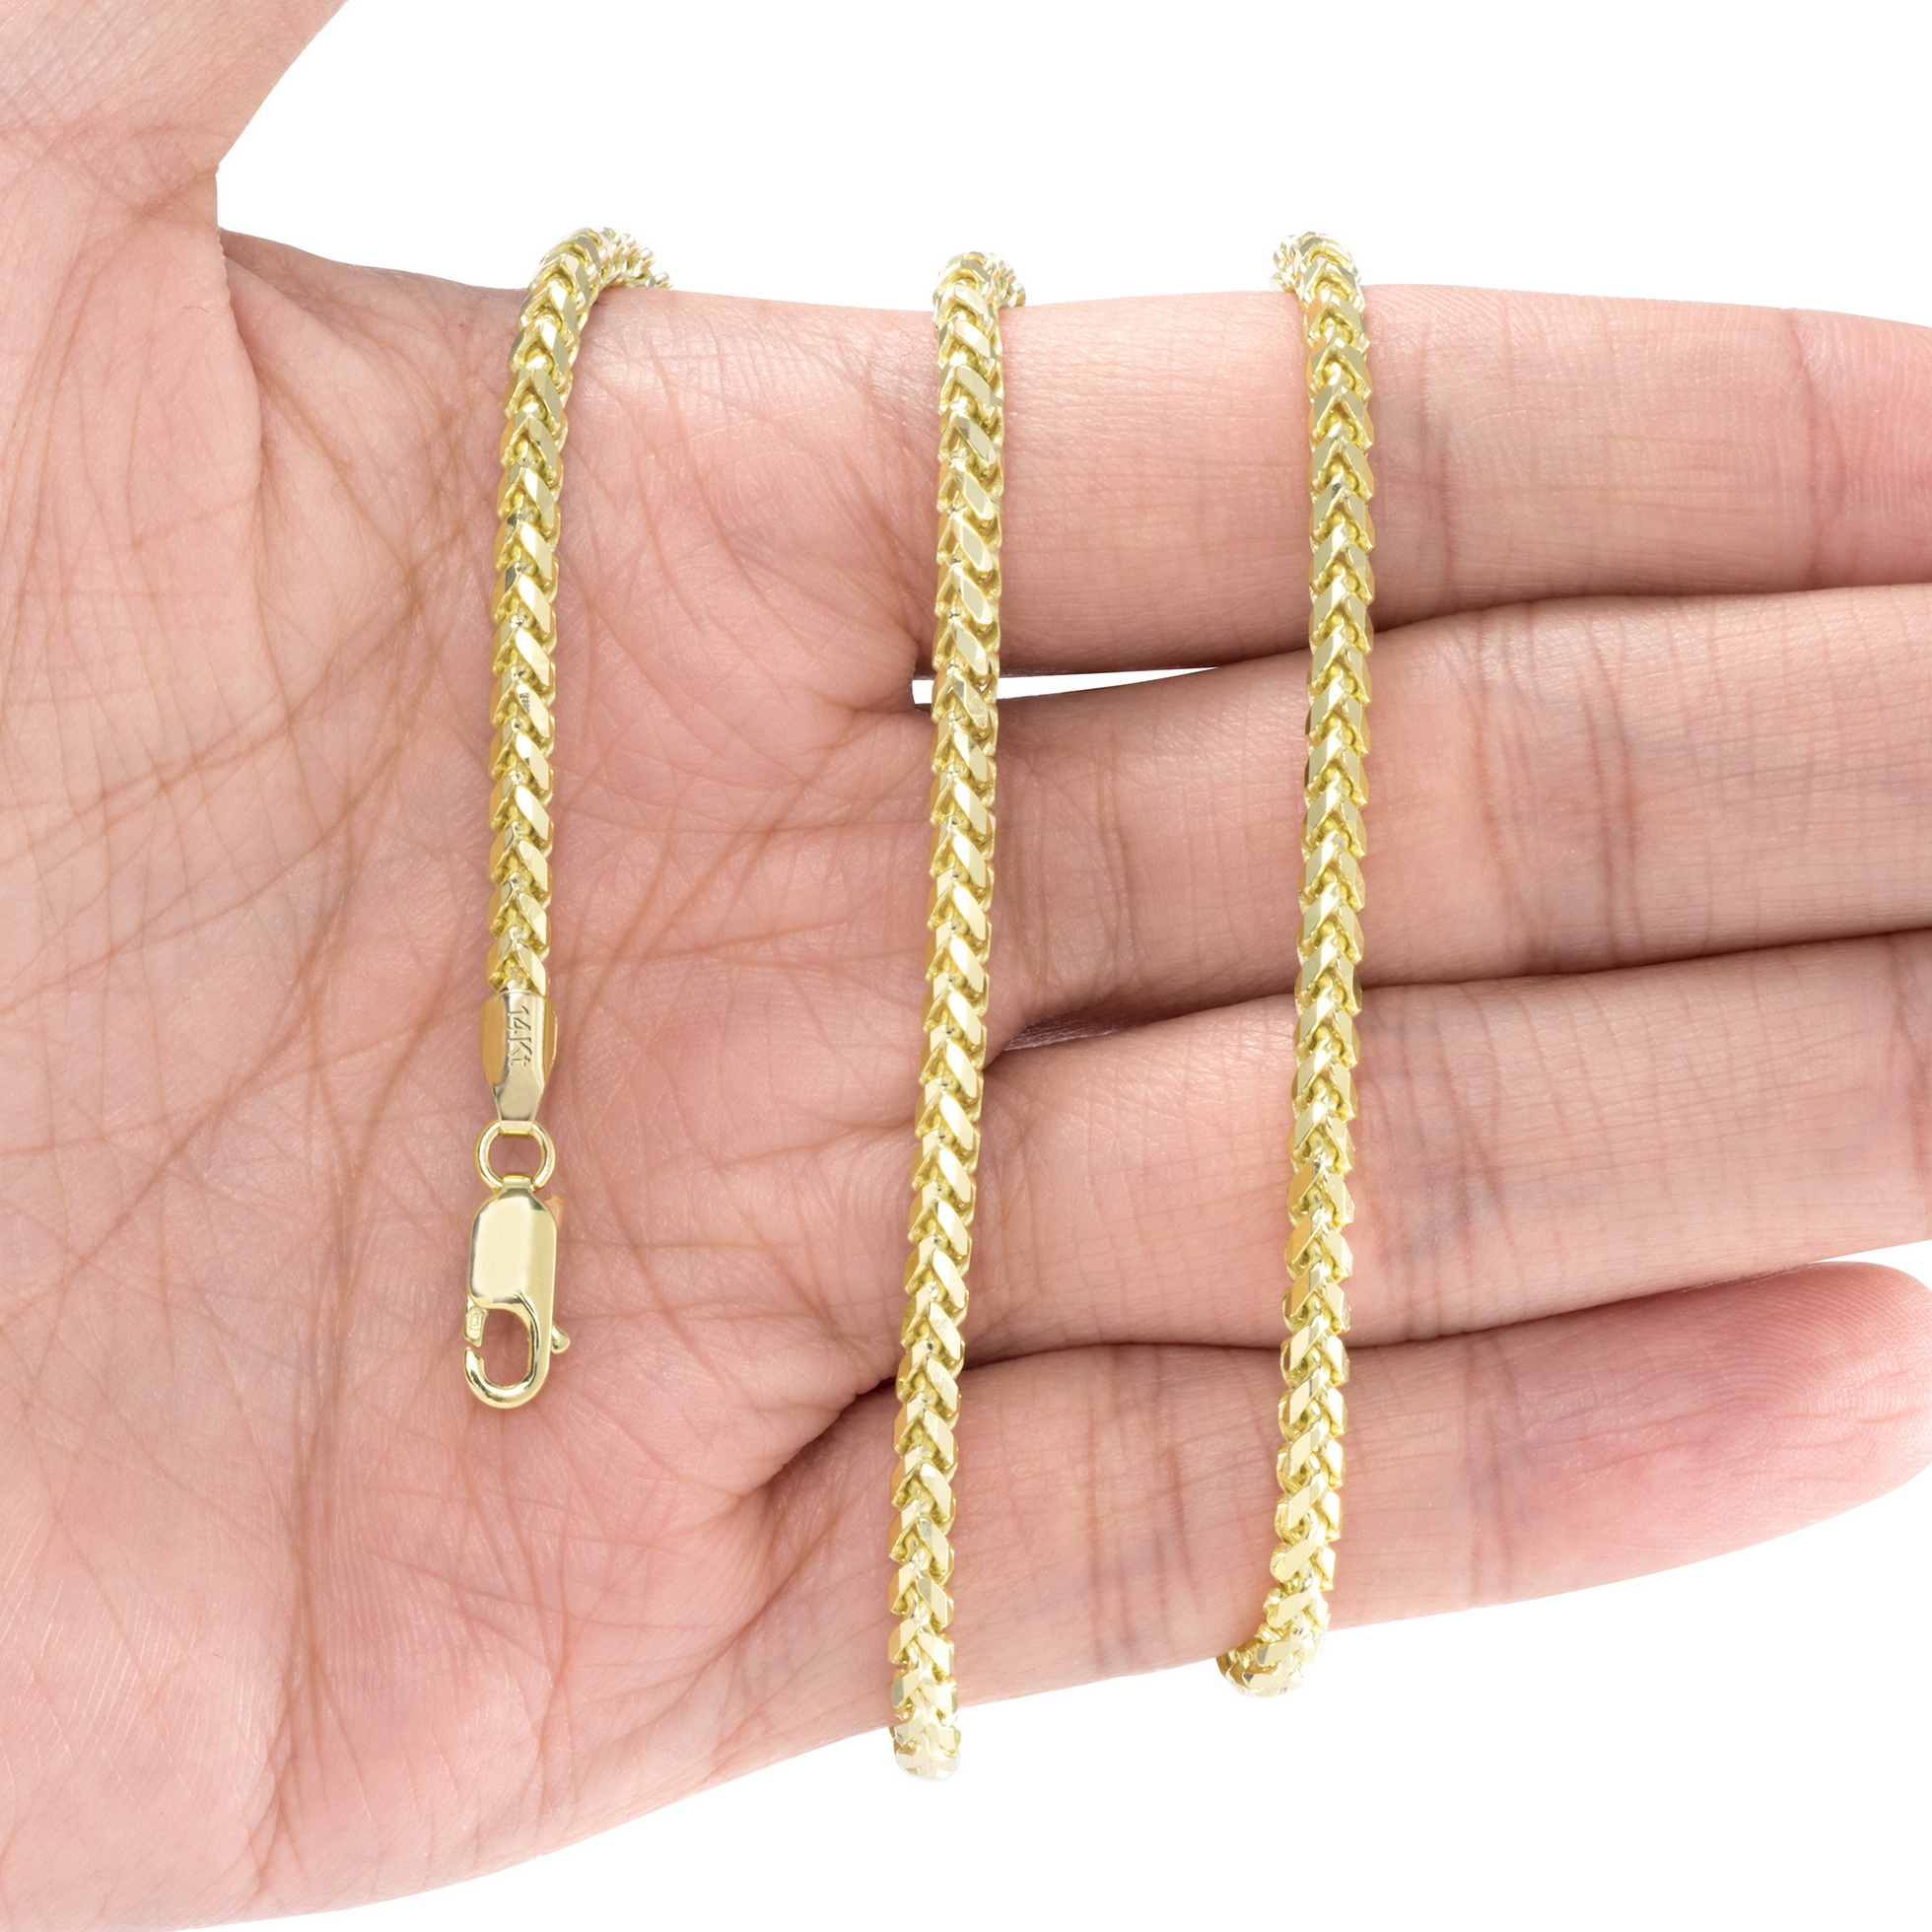 14K-Yellow-Gold-Solid-0-9mm-6mm-Round-Box-Franco-Chain-Pendant-Necklace-16-034-30-034 thumbnail 23